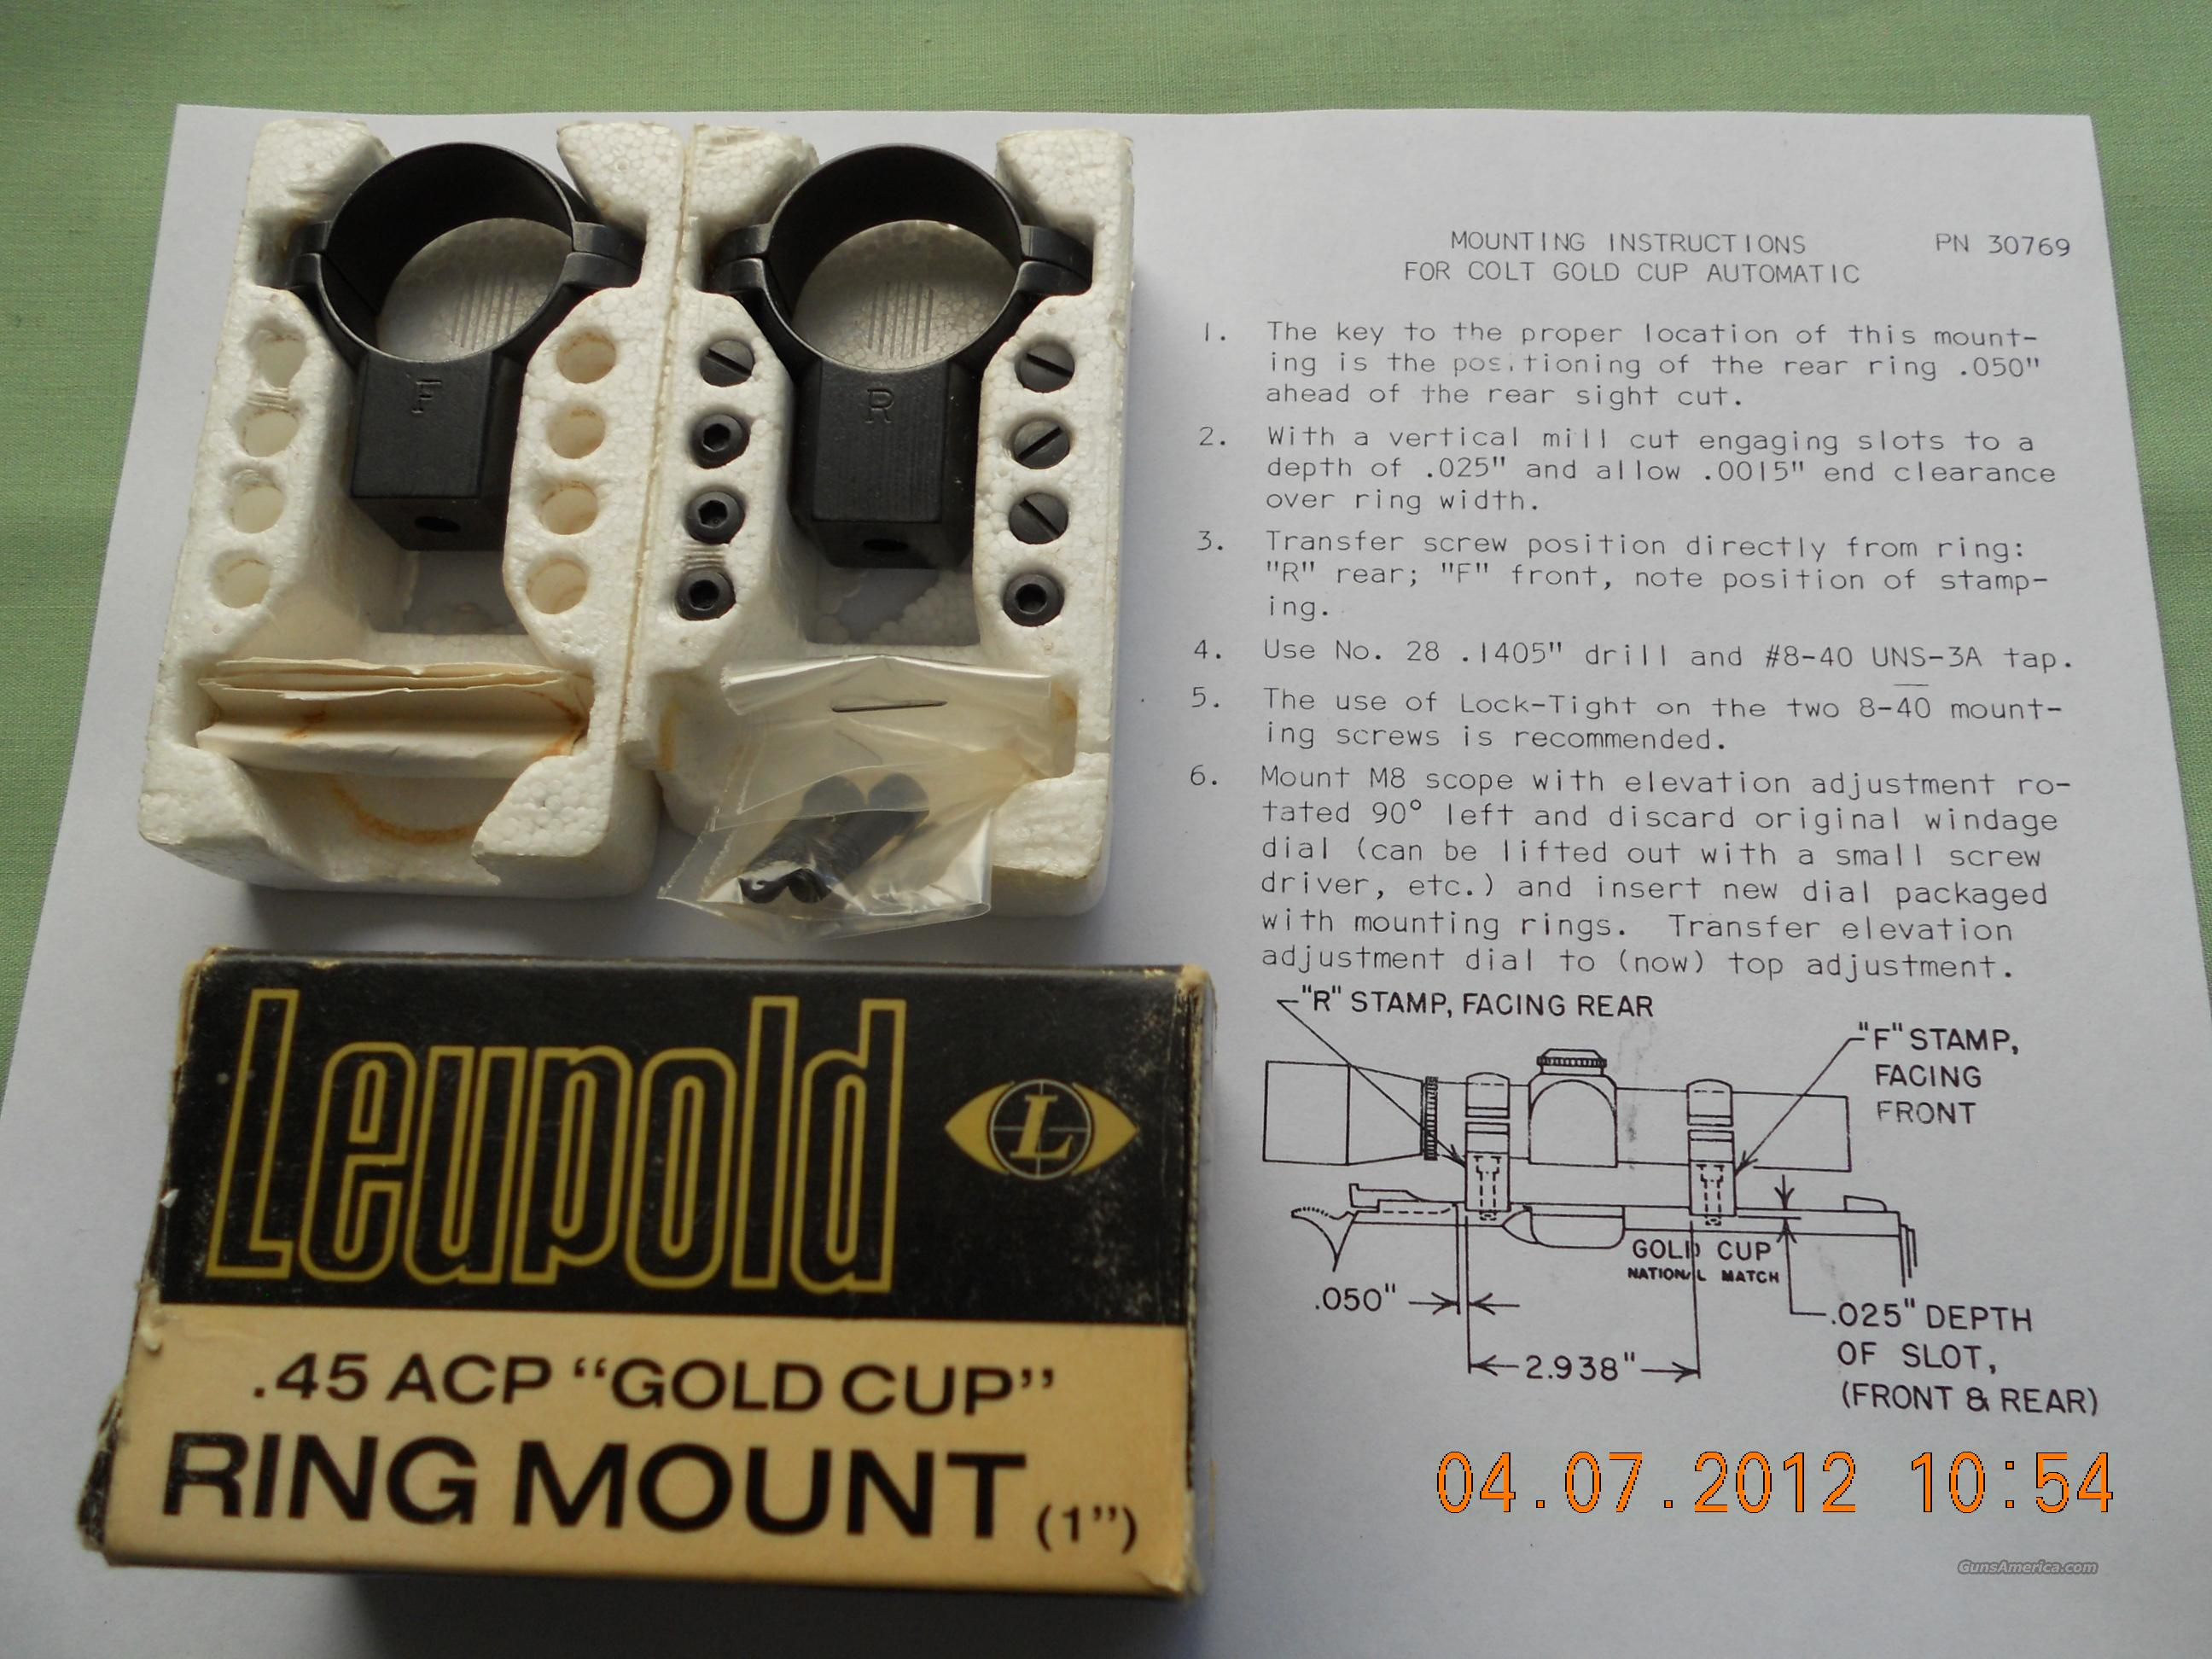 "LEUPOLD .45 ACP ""GOLD CUP"" RING MOUNT 1""   Non-Guns > Scopes/Mounts/Rings & Optics > Mounts > Other"